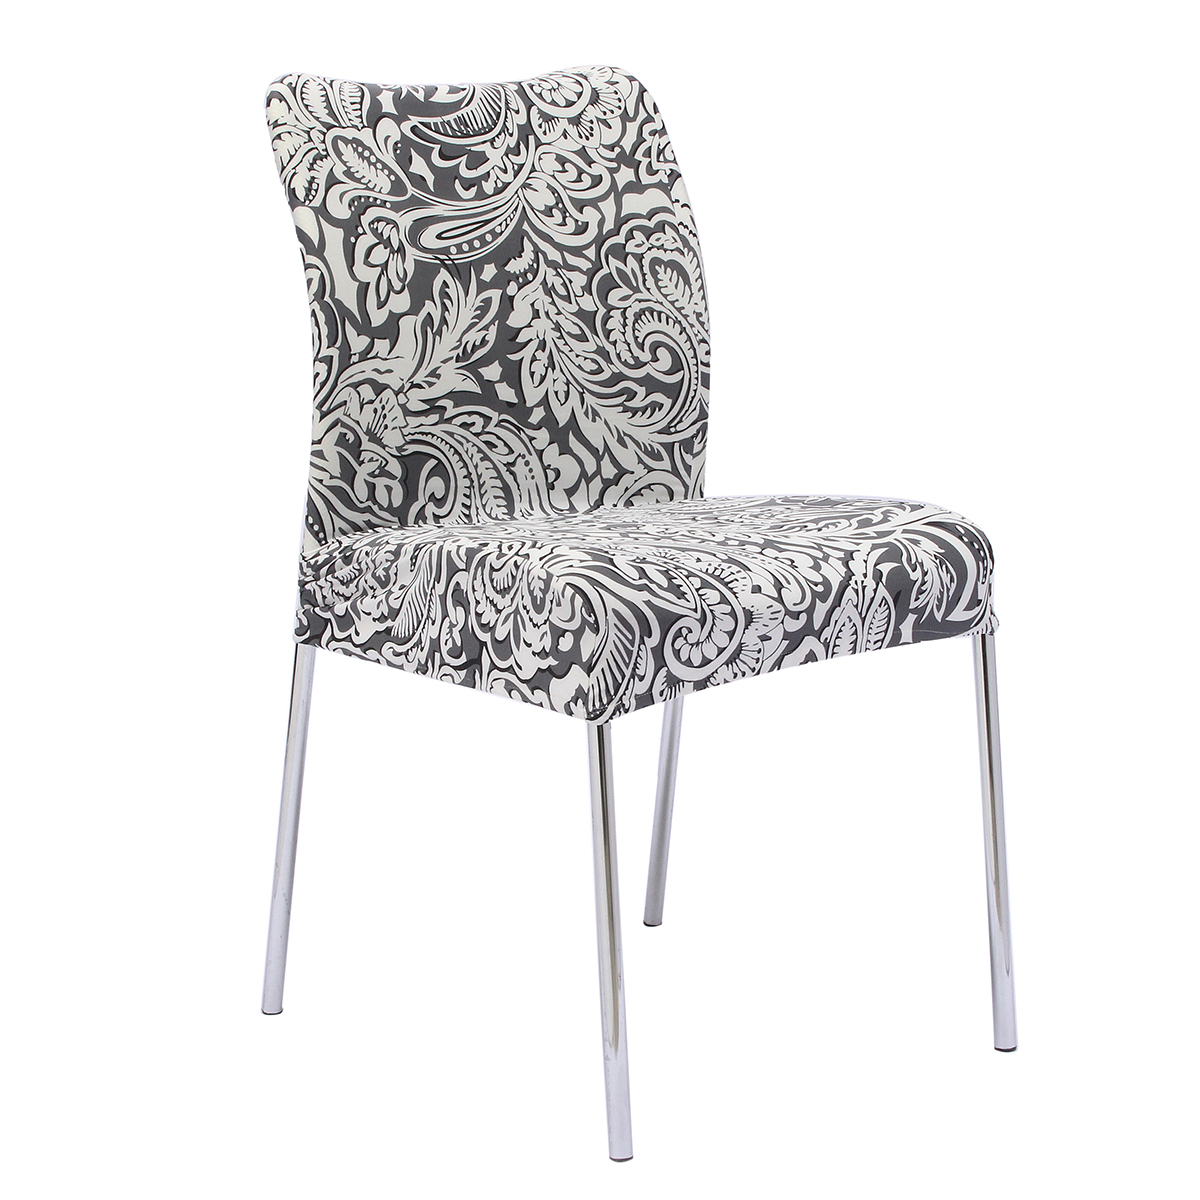 banquet chair covers malaysia table and two chairs patio 4 style stretch soft stool seat cover removable room